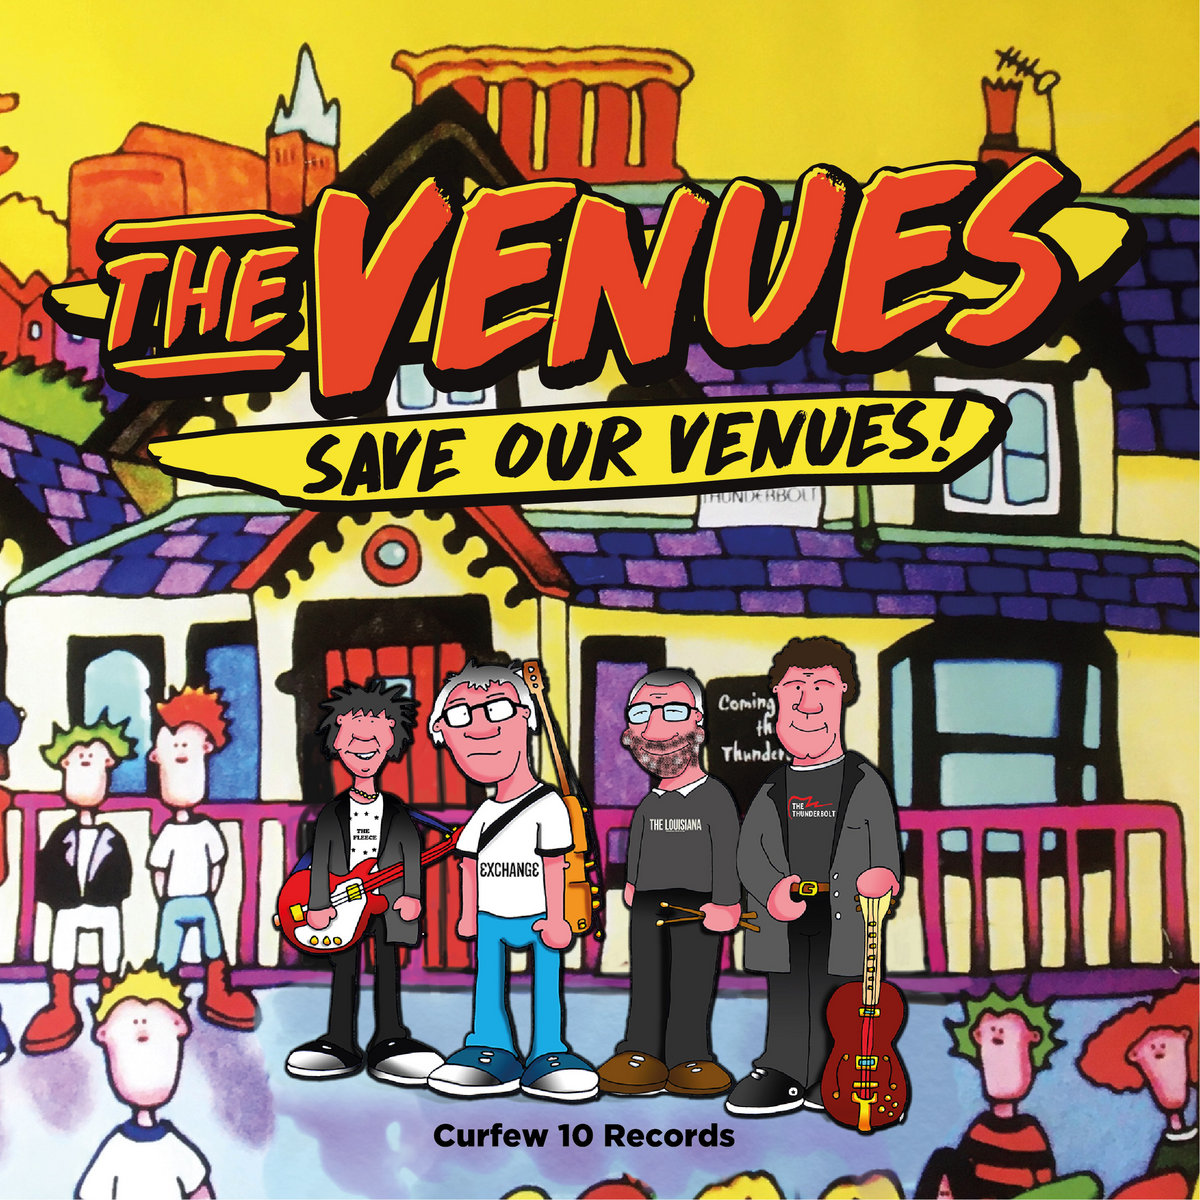 Artwork for The Venues' 'Save Our Venues', out now.